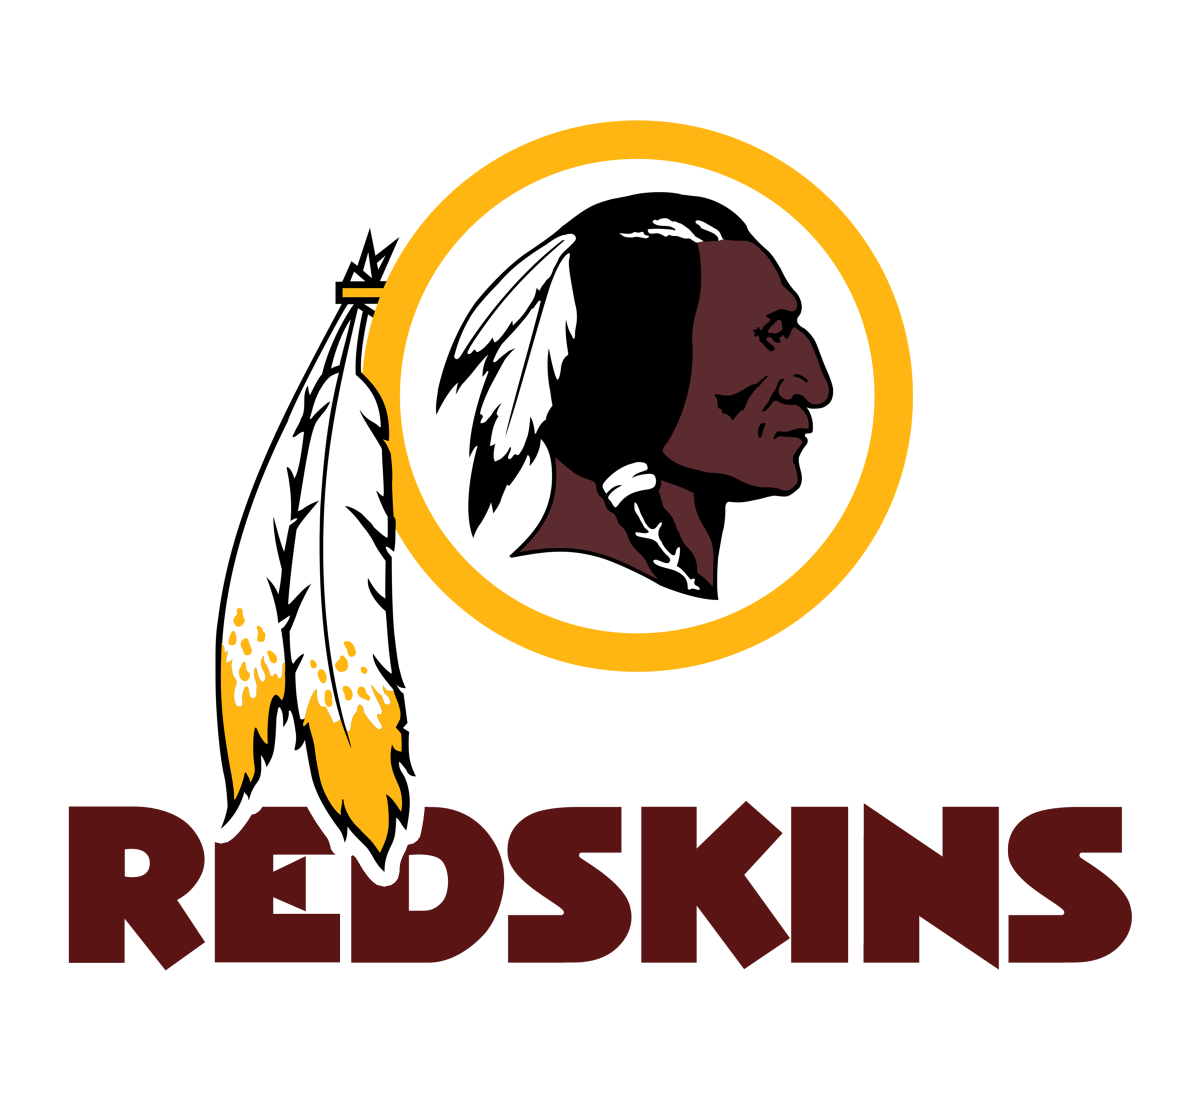 In 1992, the Washington Redskins won Super Bowl XXVI by defeating the Buffalo Bills.